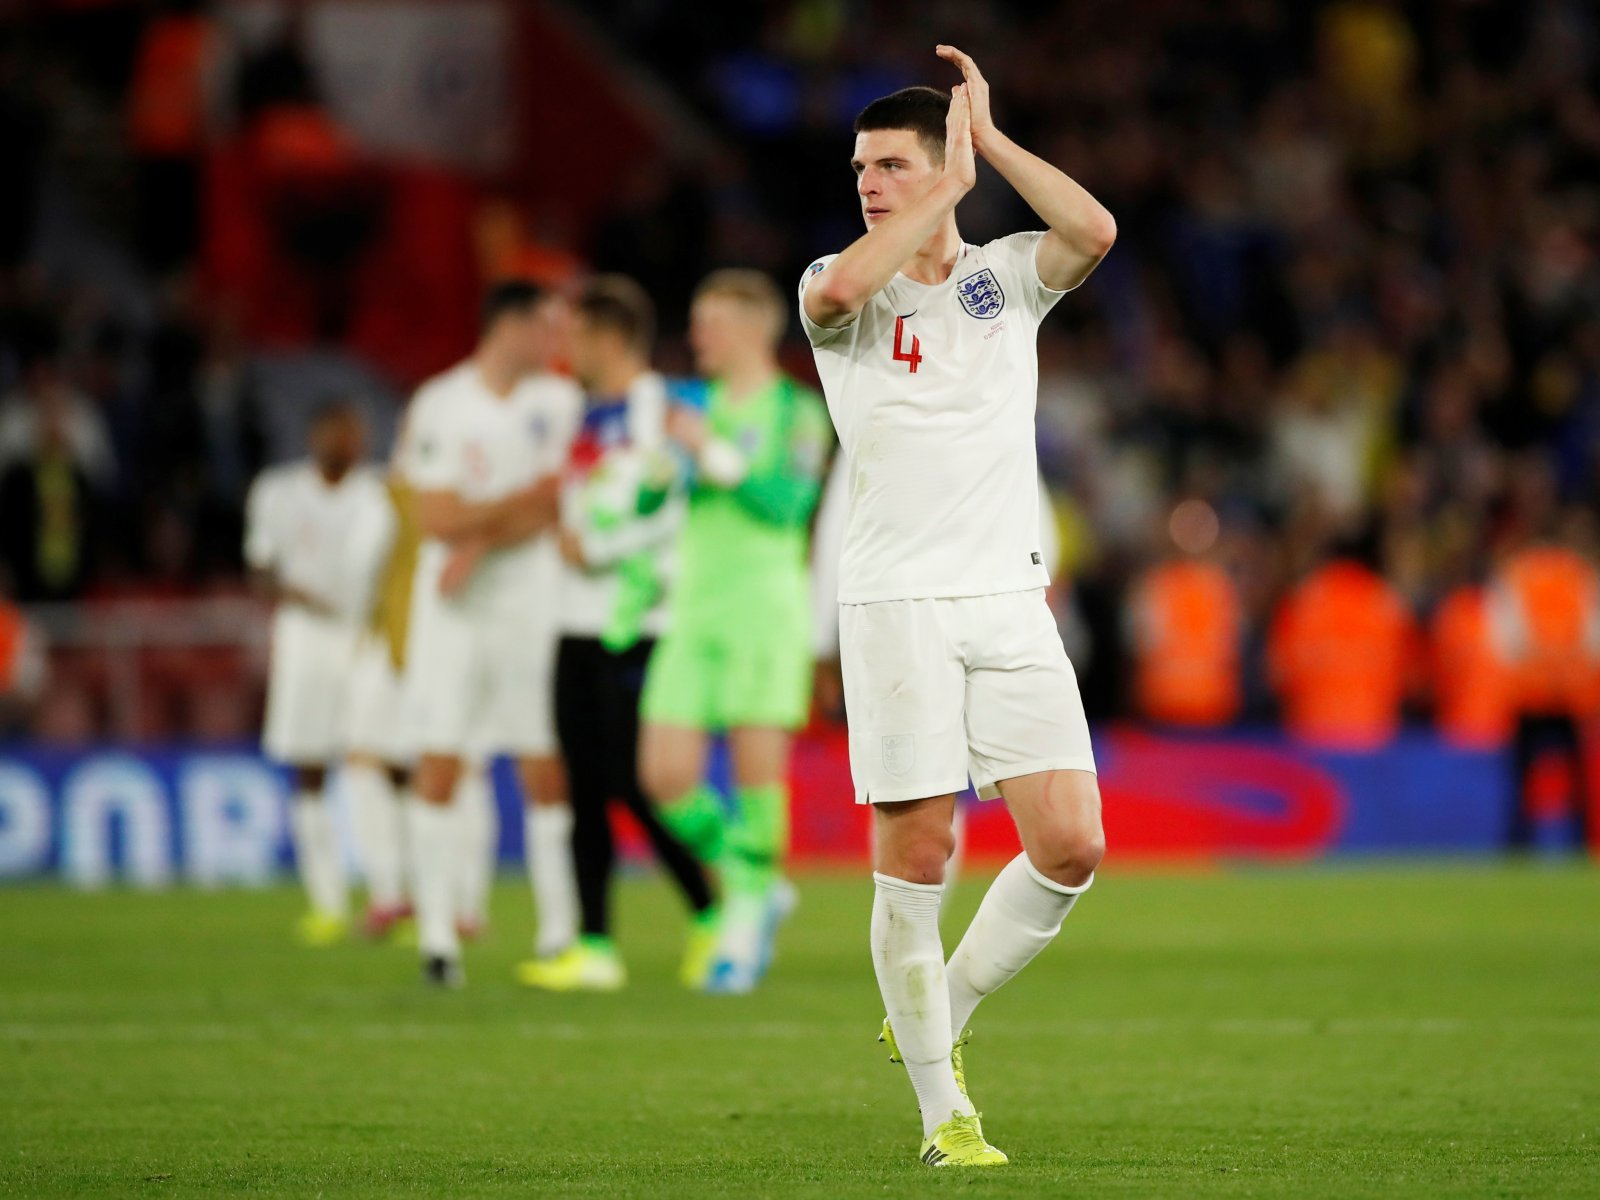 West Ham United: These fans loved Declan Rice's England contribution